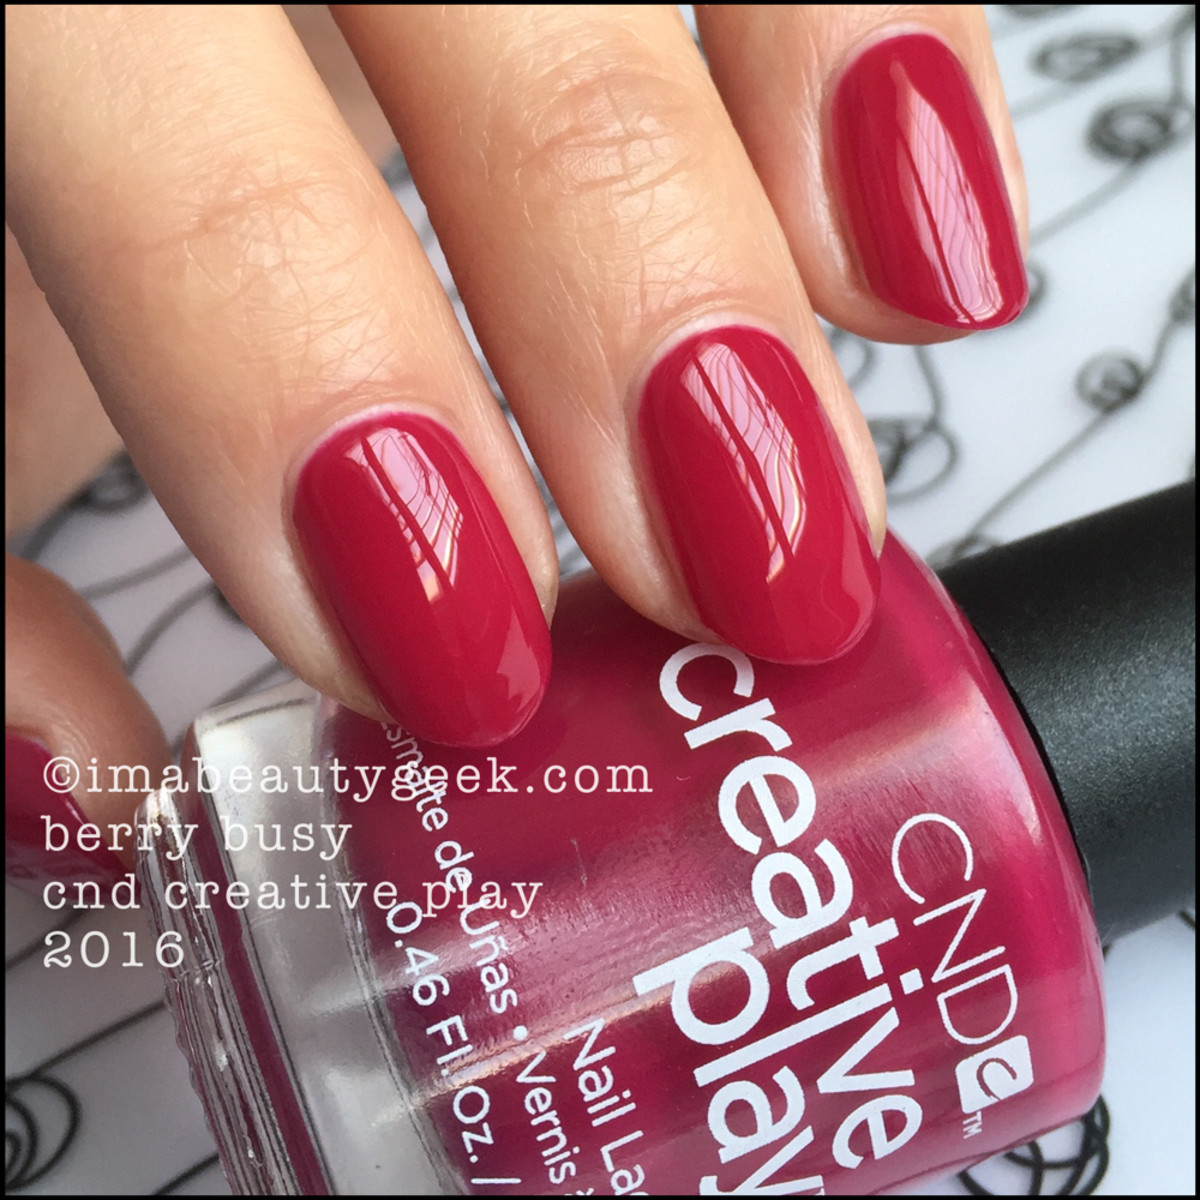 CND Creative Play Berry Busy_CND Creative Play Nail Polish Swatches 2016